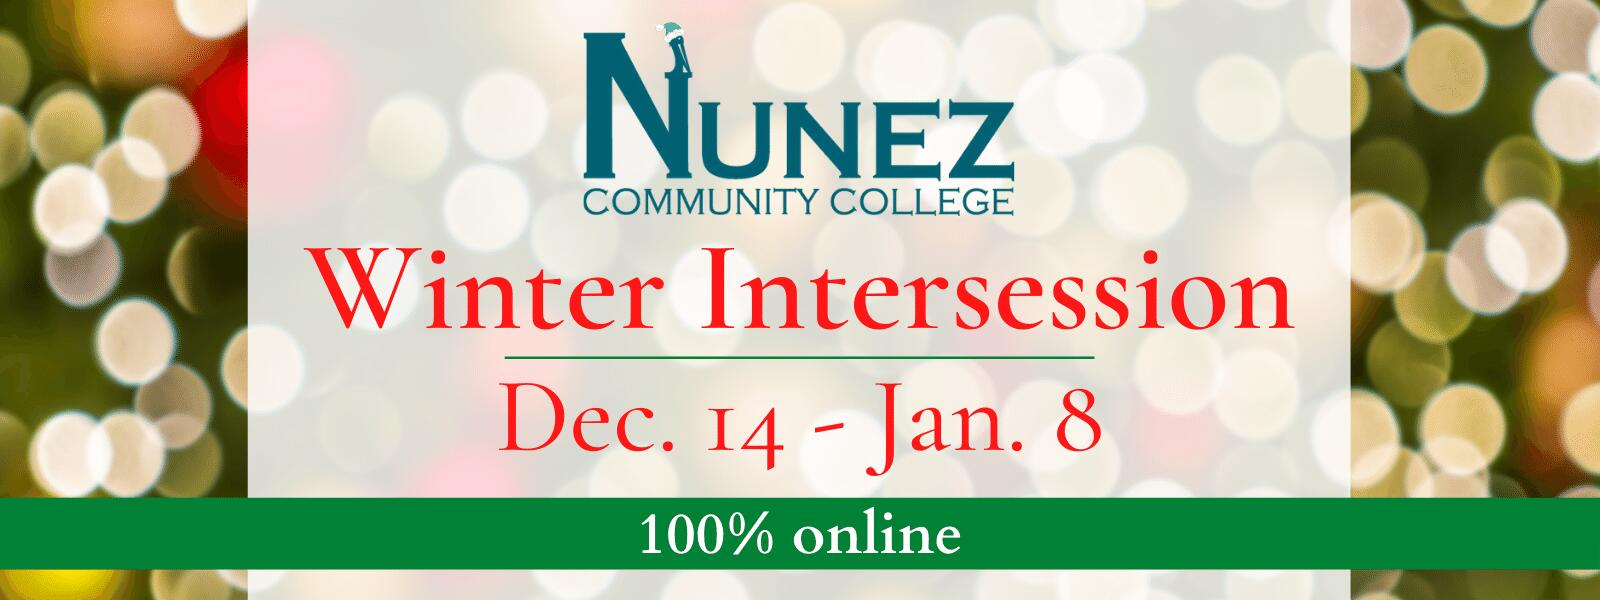 Winter Intersession: Dec 14-Jan 8, 100% Online - Click Here for More Information